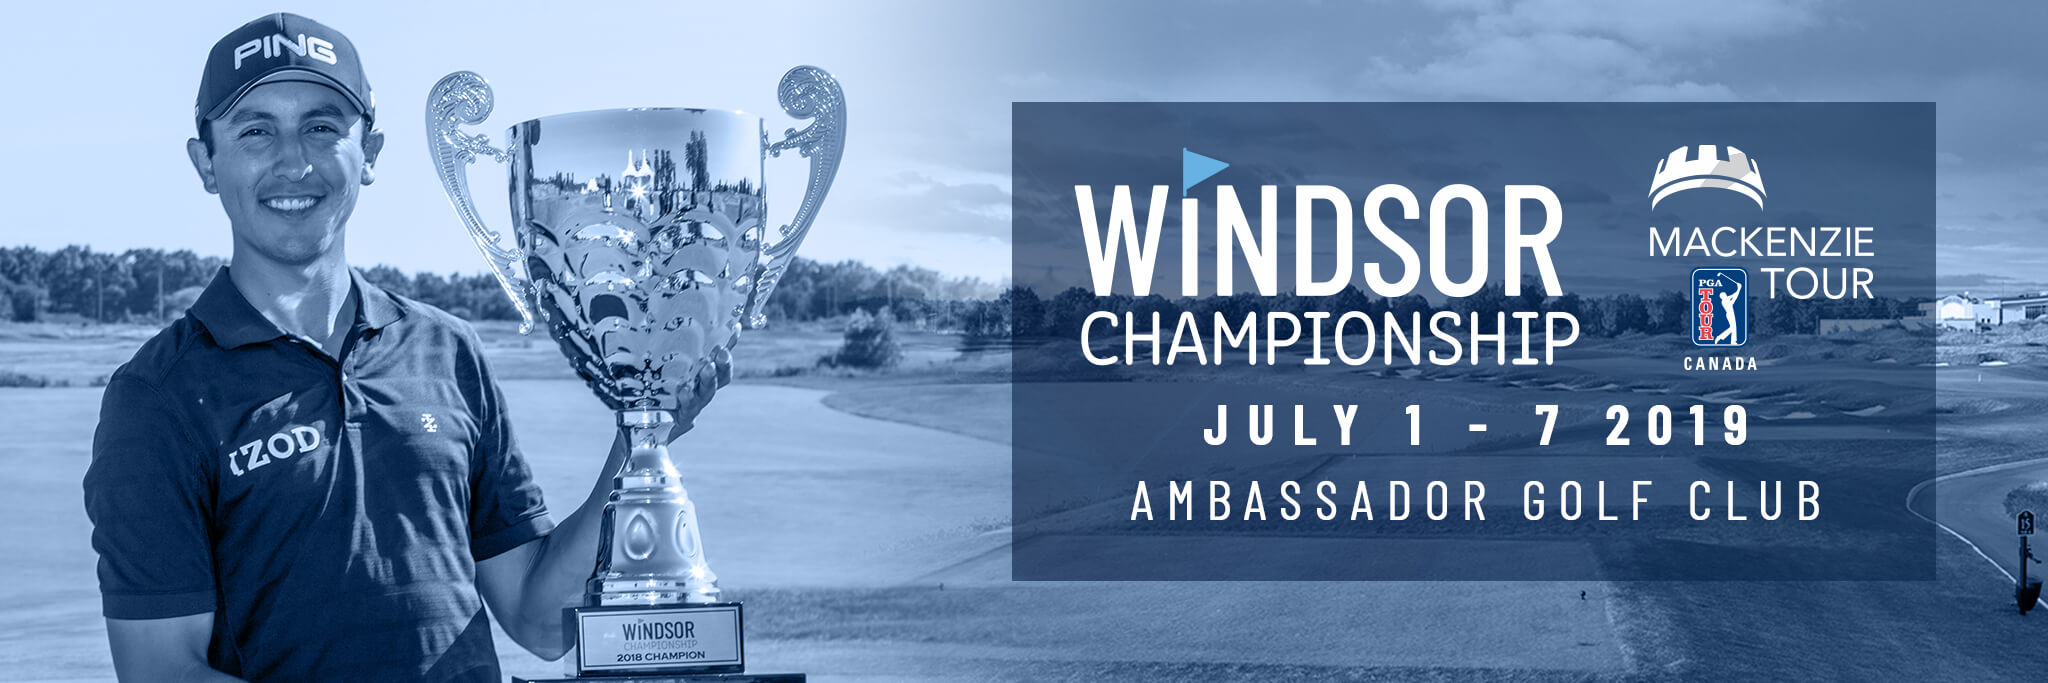 Mackenzie Tour Windsor Championship July 1-7, 2019